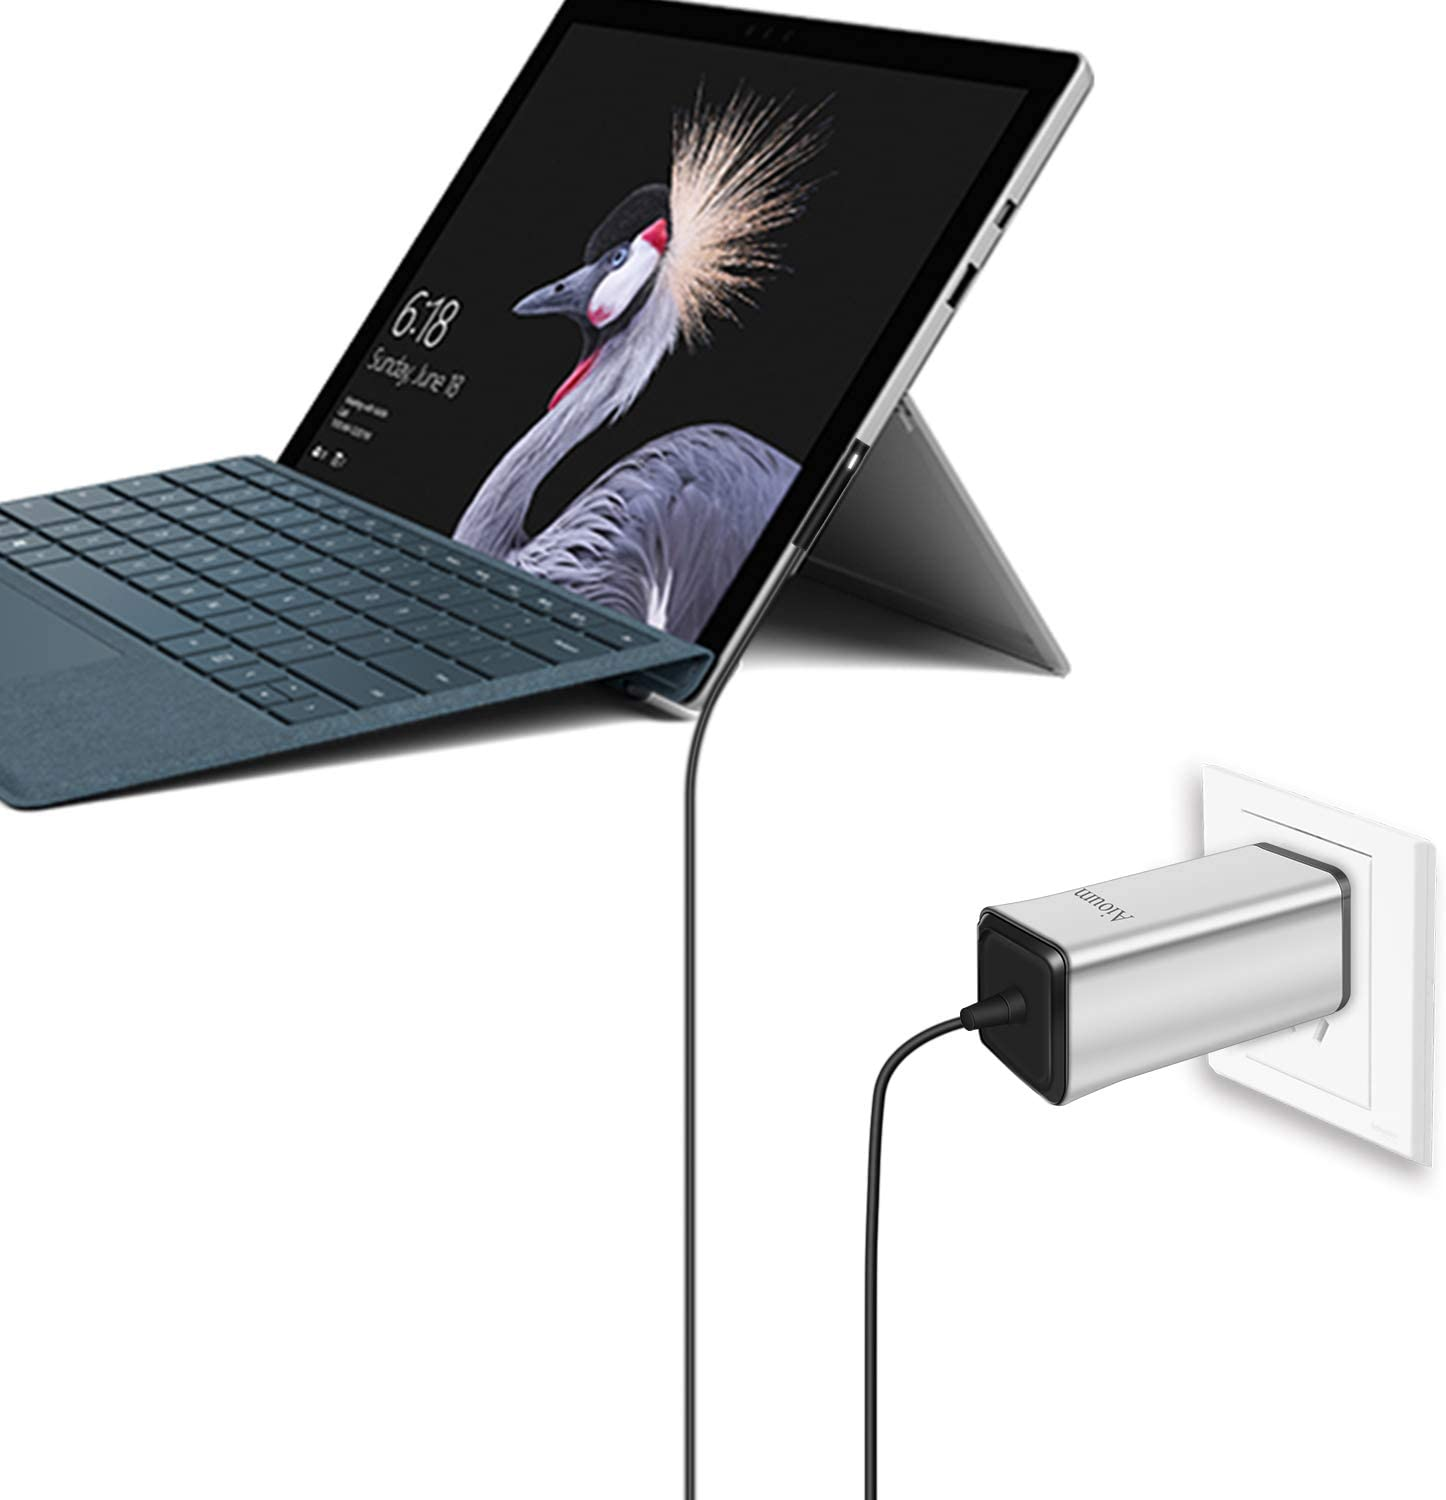 Aioum Surface Go Charger 65W,Fast Laptop Power Supply 15V 4A for Microsoft Surface Book Surface Pro 3 Pro 4 Pro 5 Pro 6 Pro 7 Surface Go,Surface Laptop,Microsoft Surface Charger with 6Ft Cord (Silver)